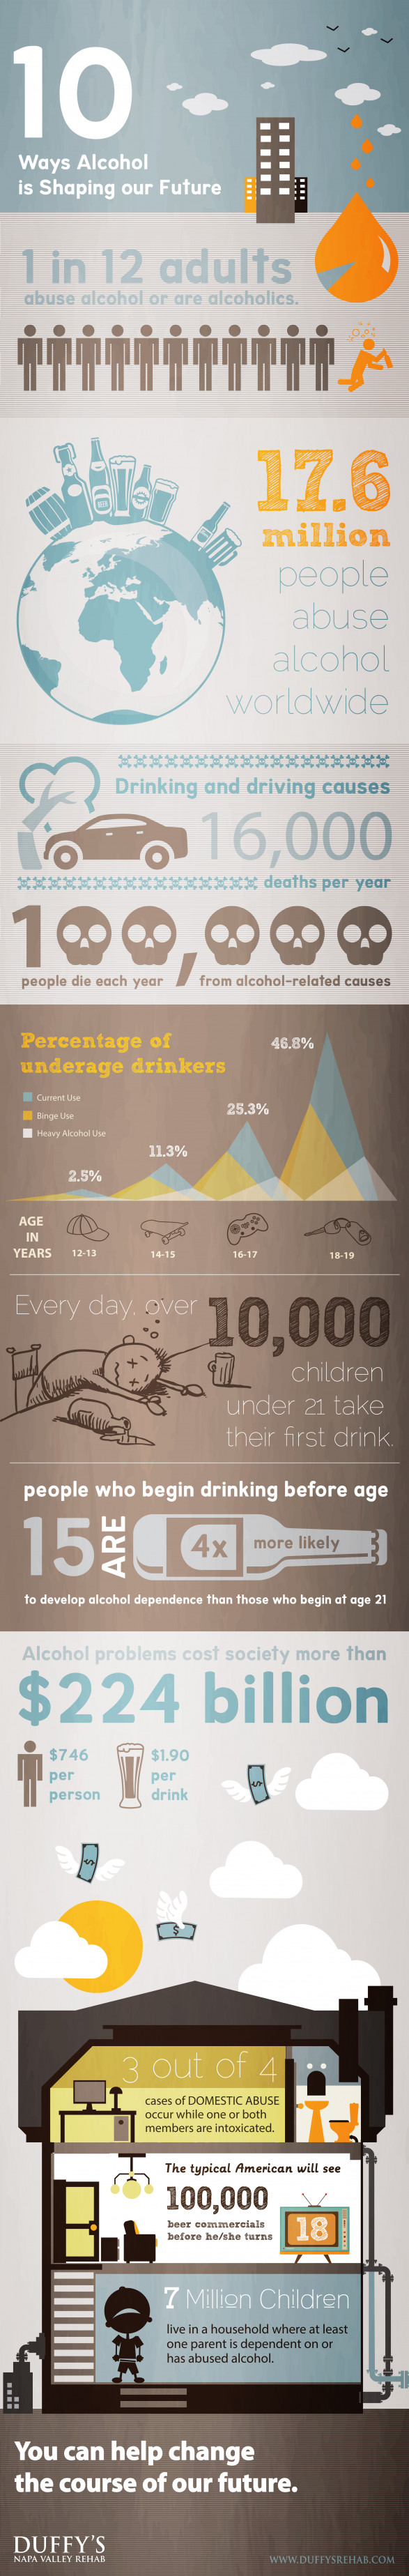 10 Ways Alcohol is Shaping our Future